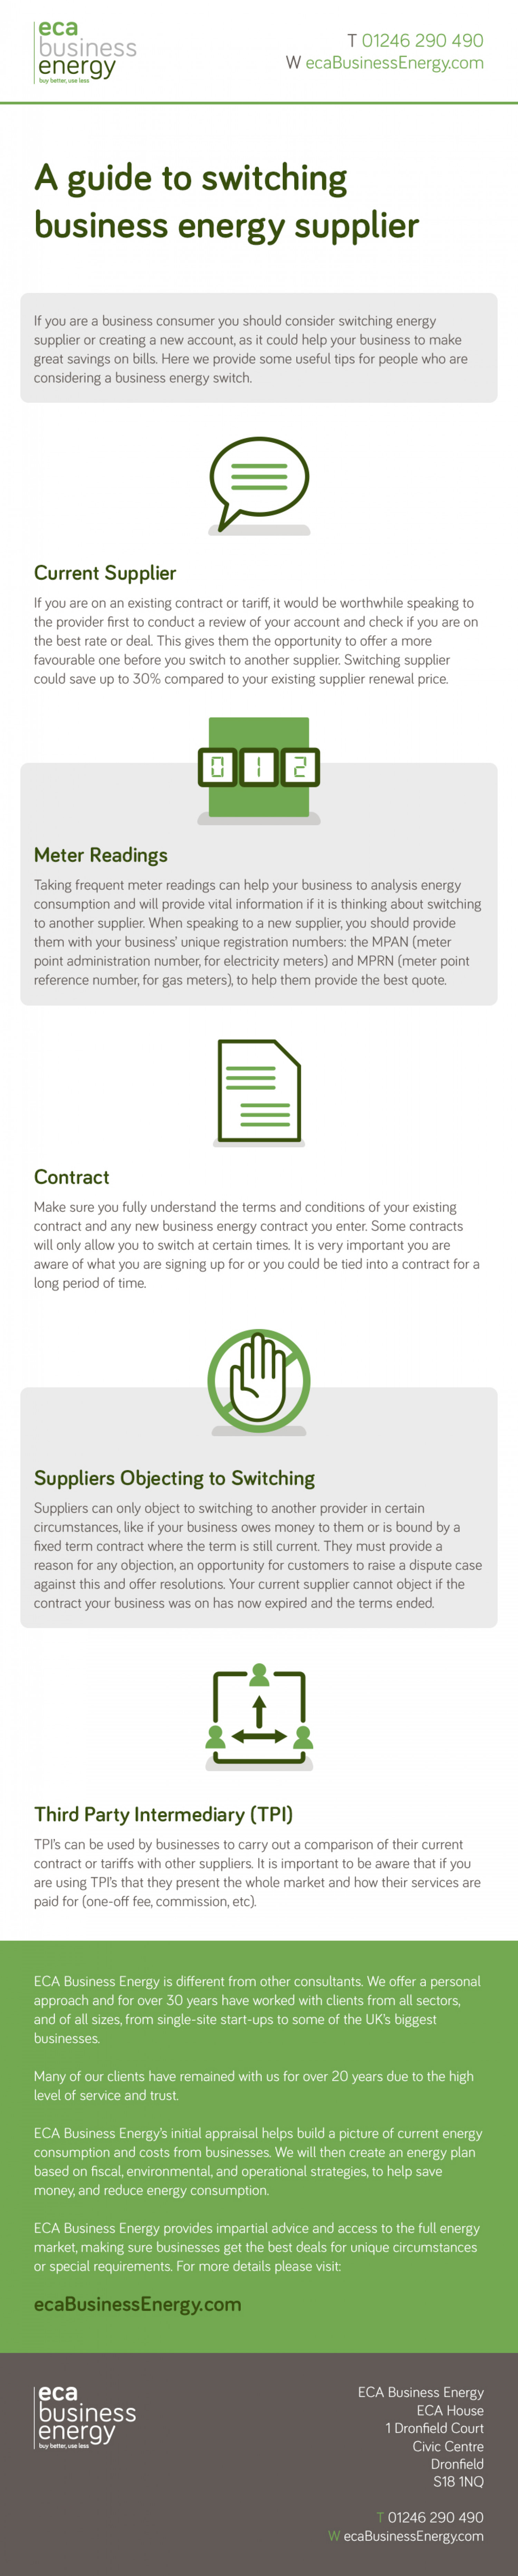 A Guide to Switching Business Energy Supplier Infographic